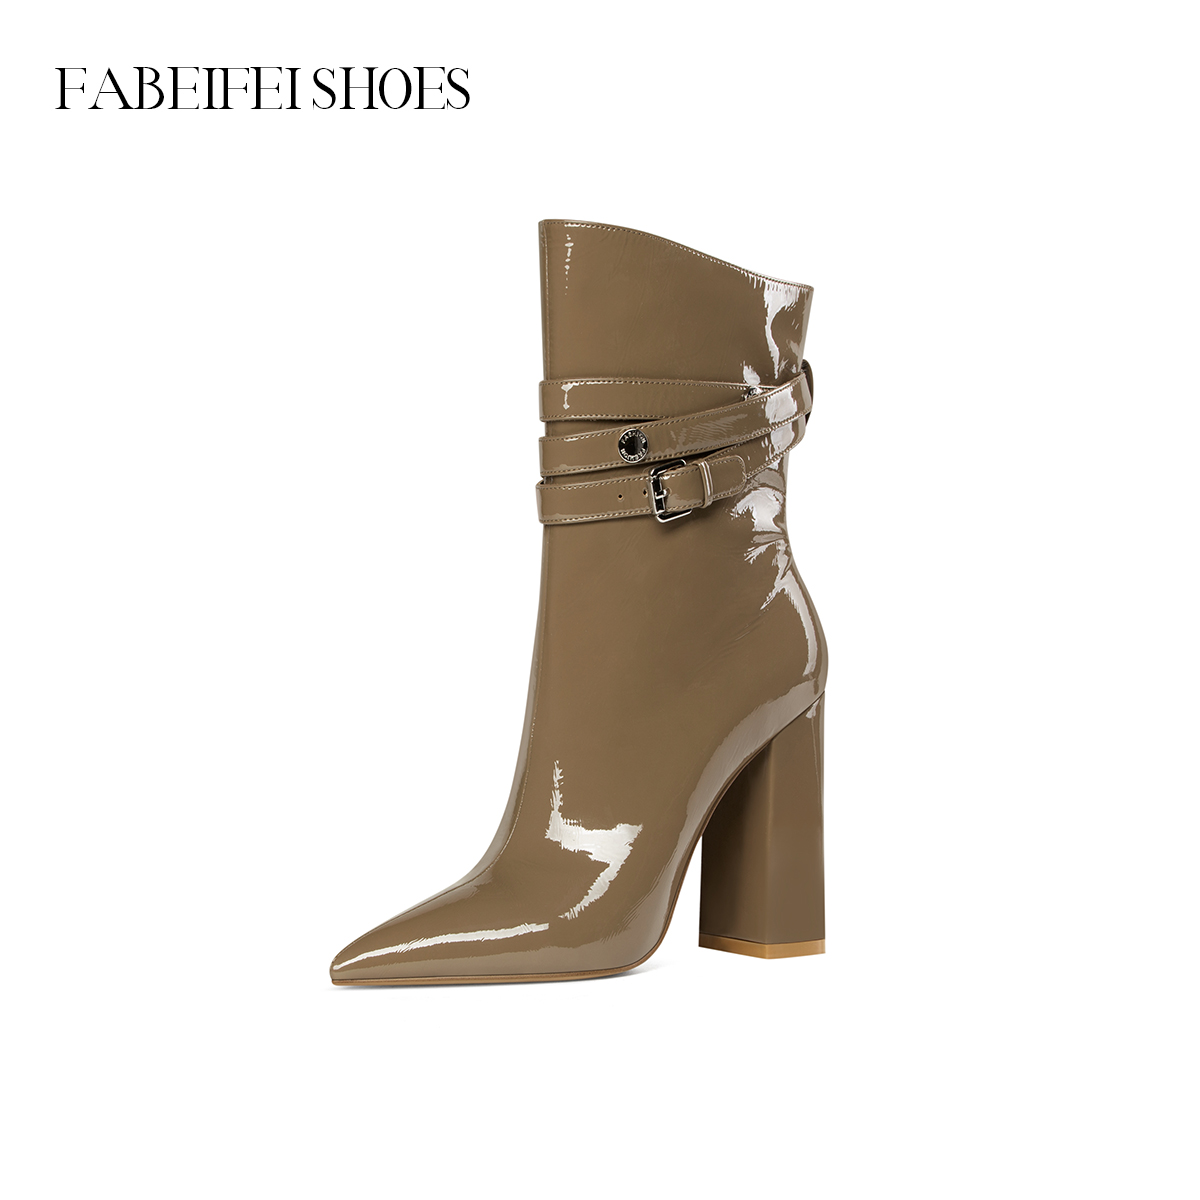 Fabe Fei 2020 autumn and winter new short boots women European and American fashion pointed high heel short boots patent leather thick heel women boots